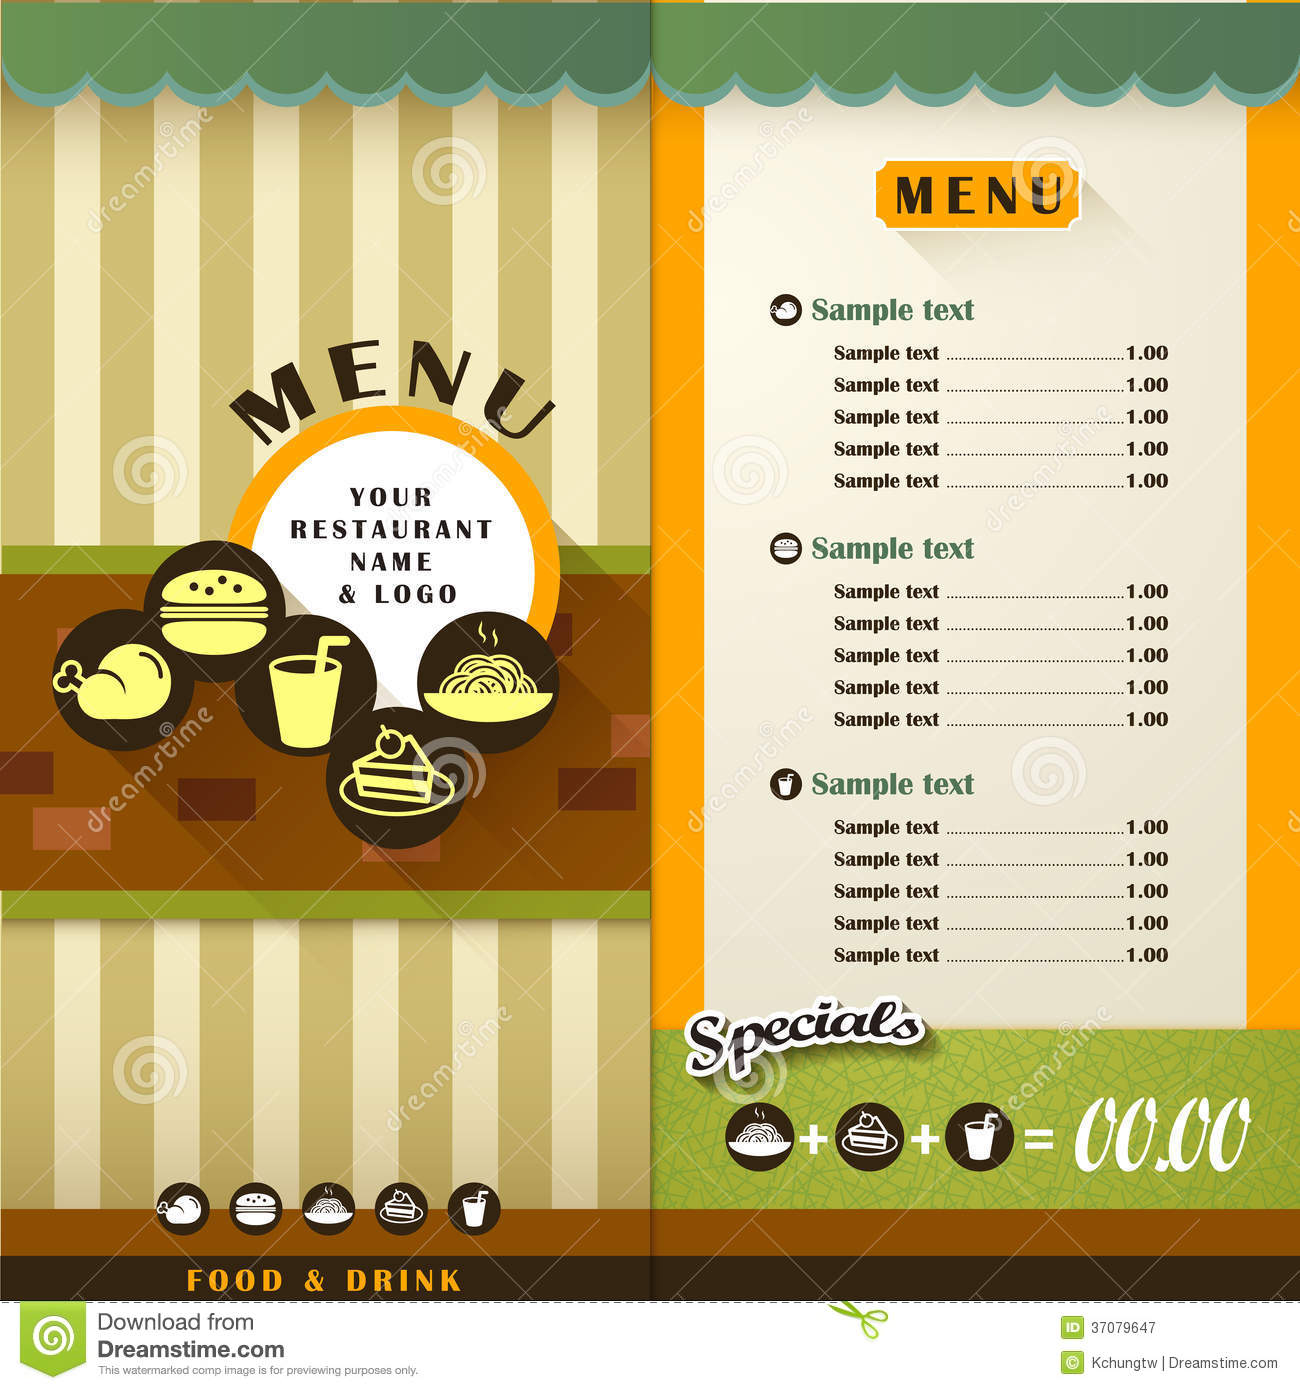 Restaurant menu royalty free stock photography image